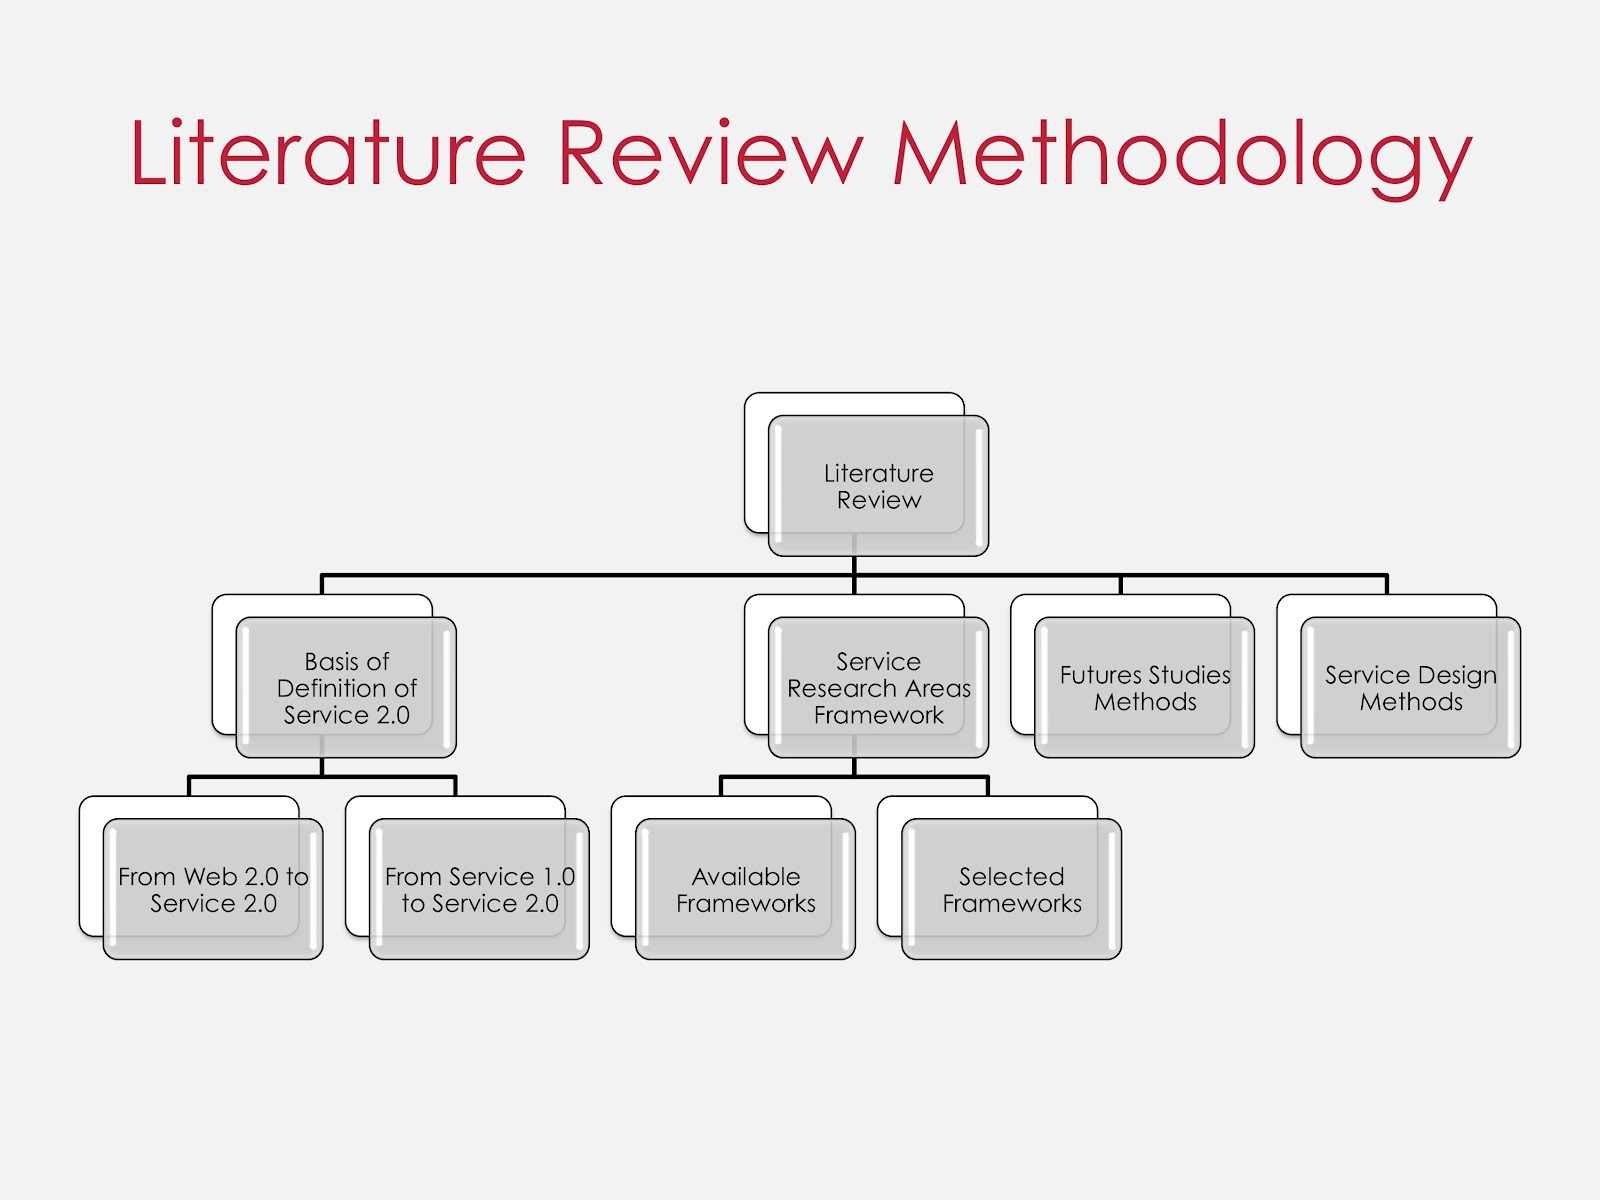 Literature Review Writing Services from PhD's